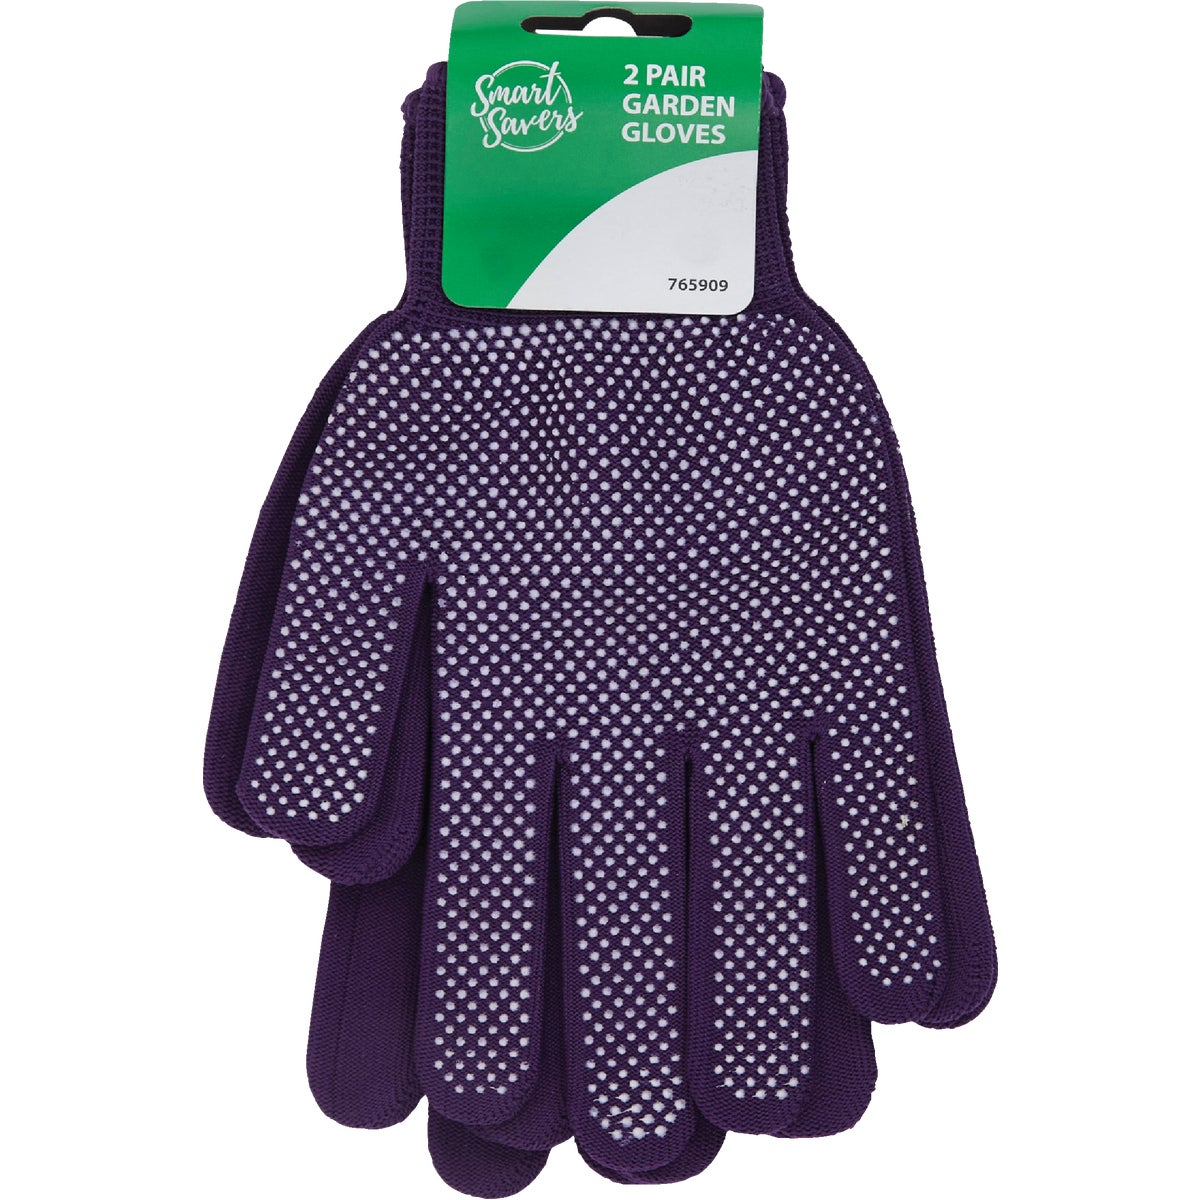 2 PAIR GARDEN GLOVES - BT037-2A by Do it Best